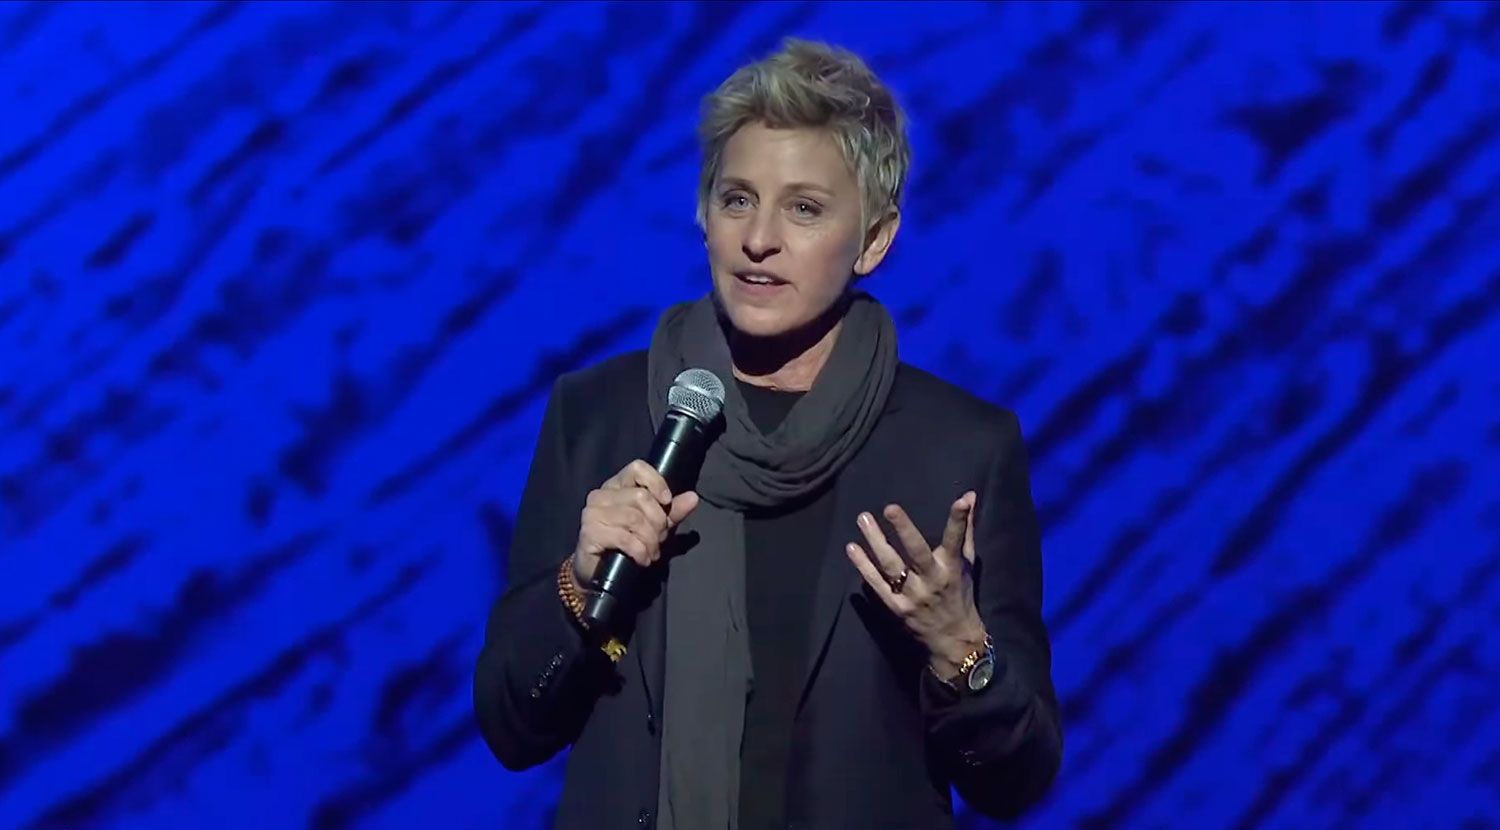 Ellen DeGeneres shares her experience with TM at the gala